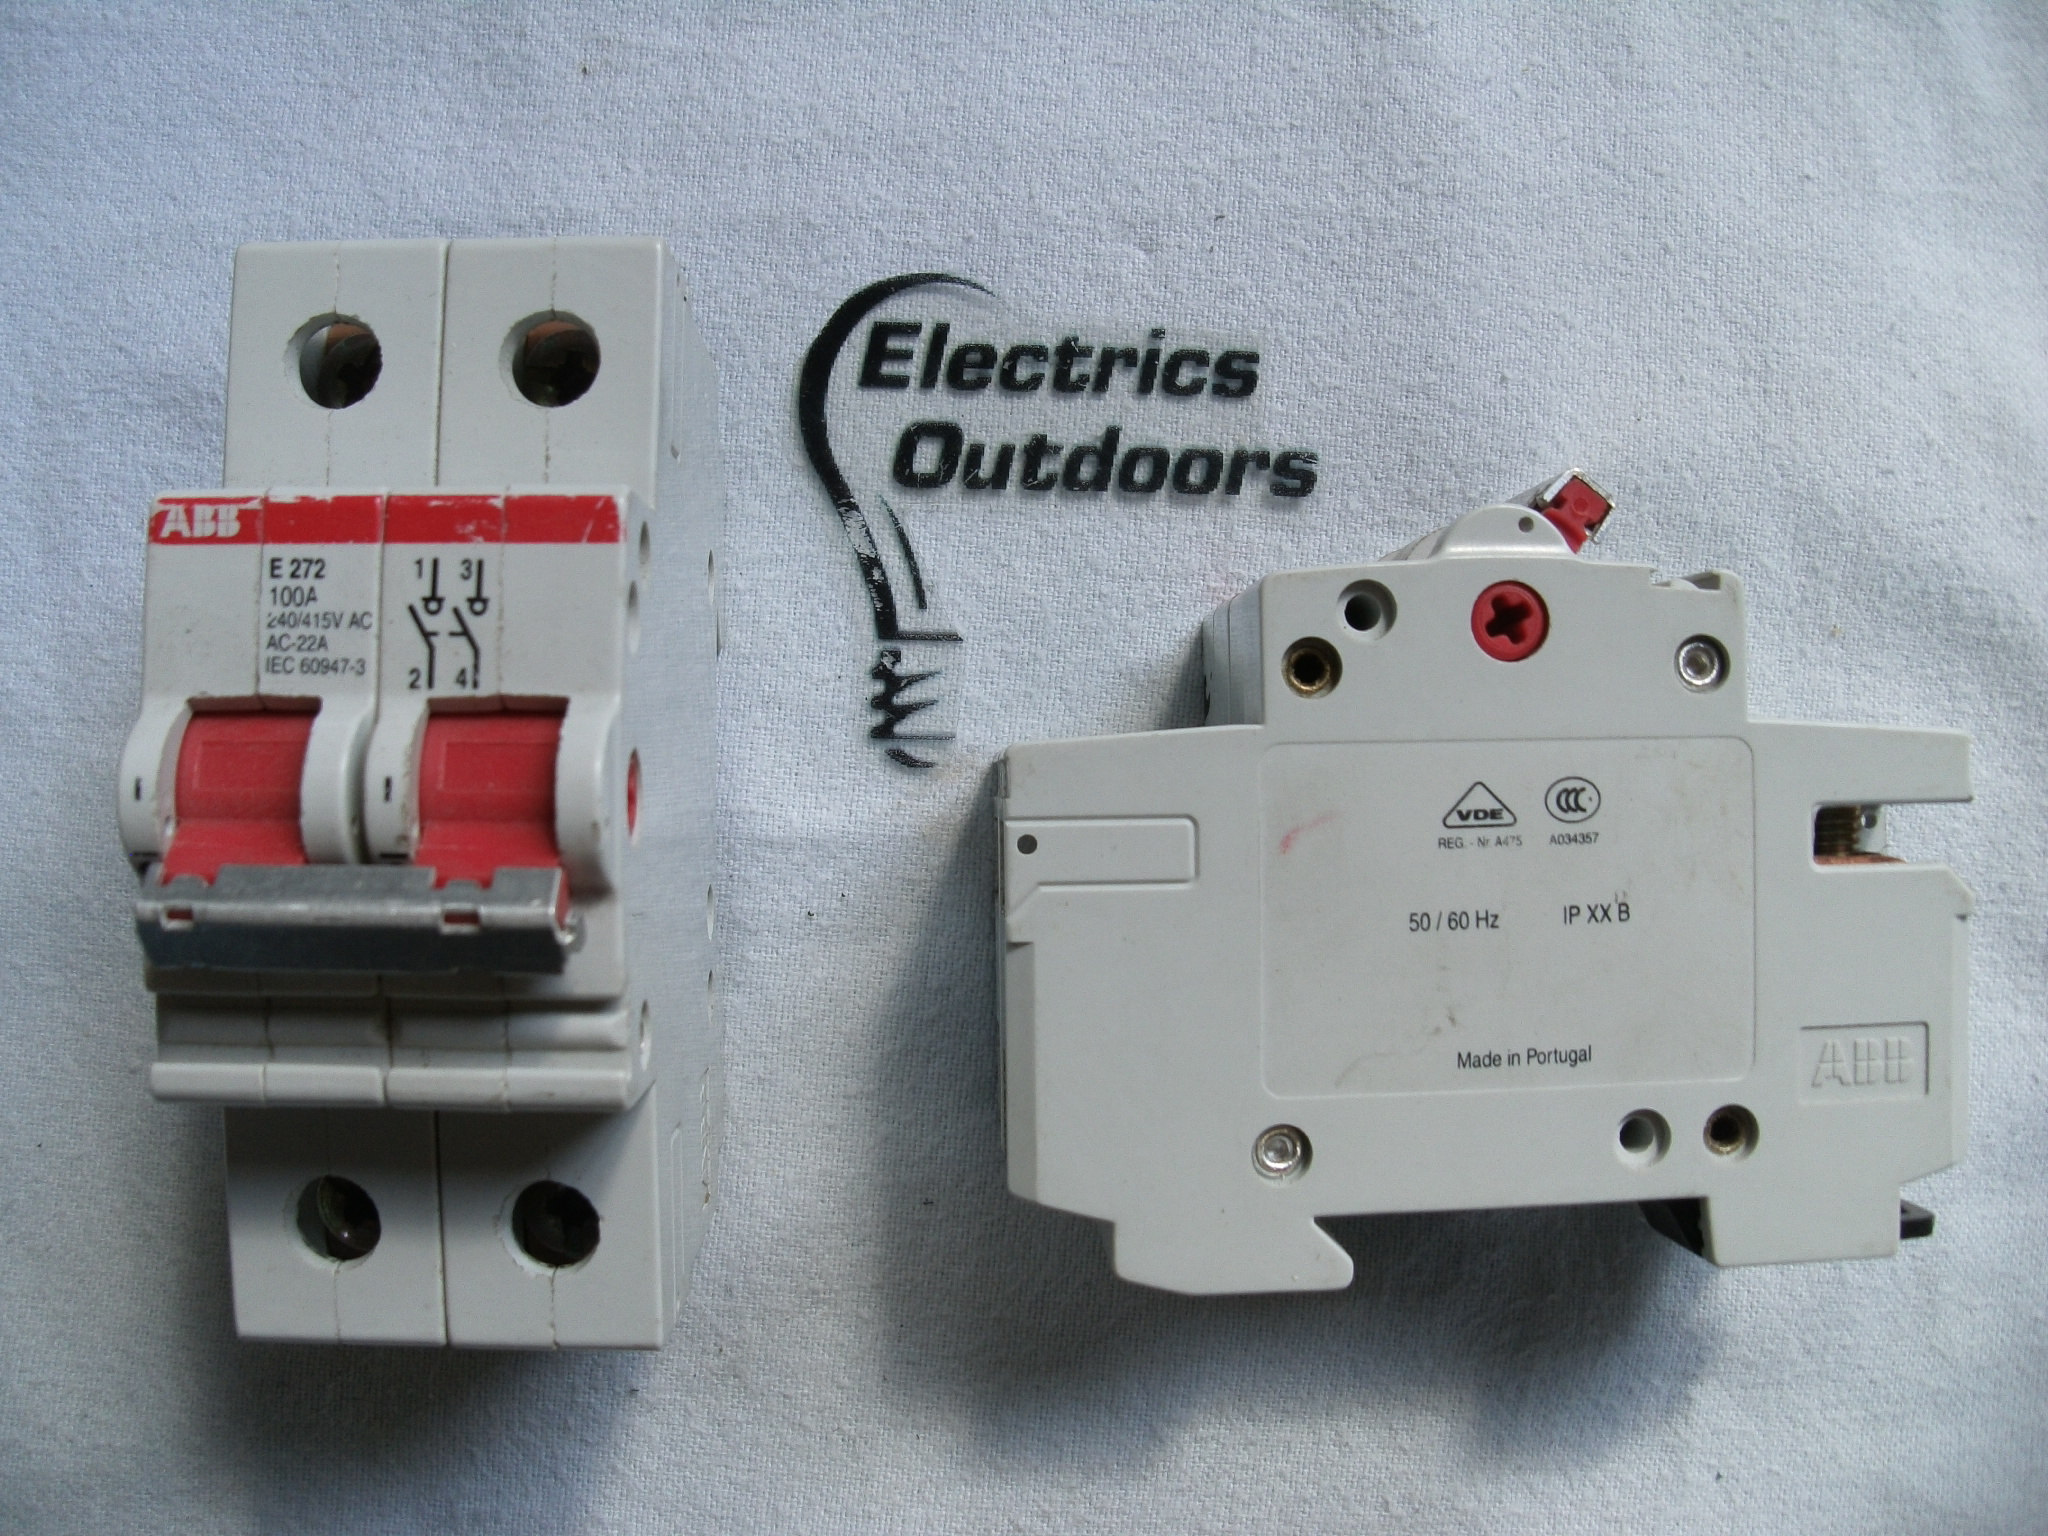 ABB 100 AMP MAIN SWITCH DISCONNECTOR 240/415V E272 AC-22A IEC 60947